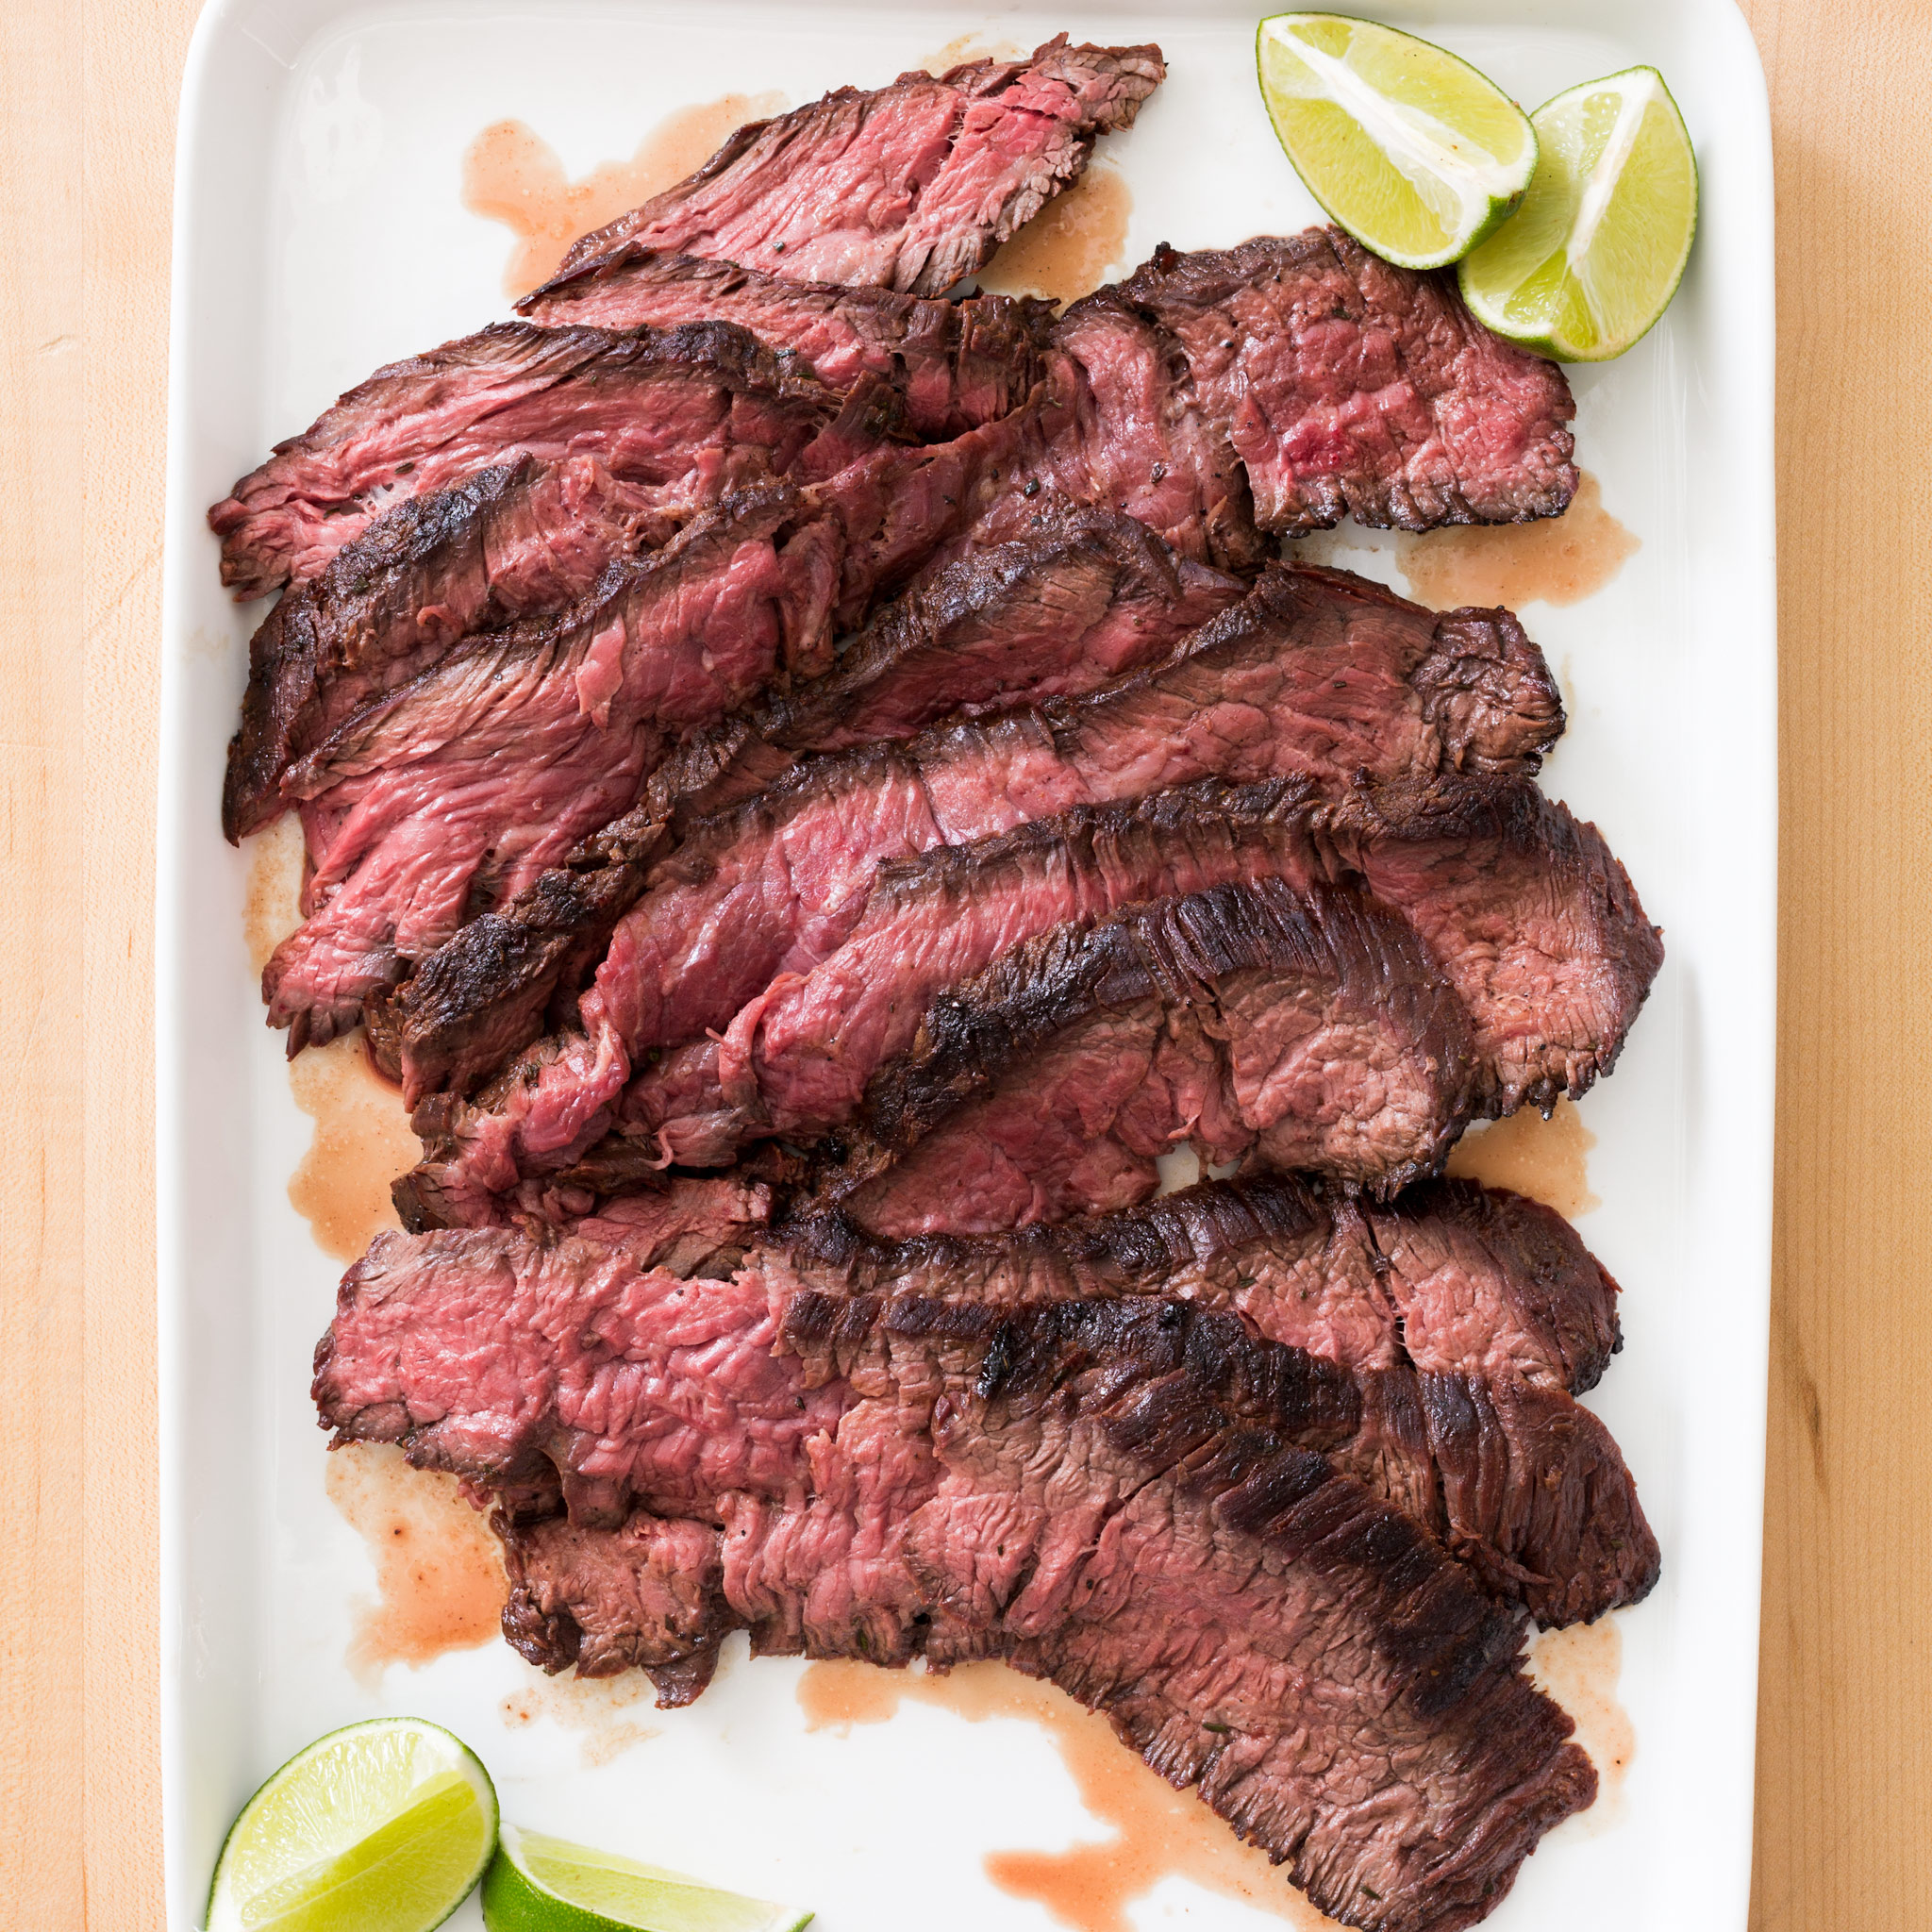 How To Cook A Sirloin Tip Steak On The Grill - CheckNows.CO